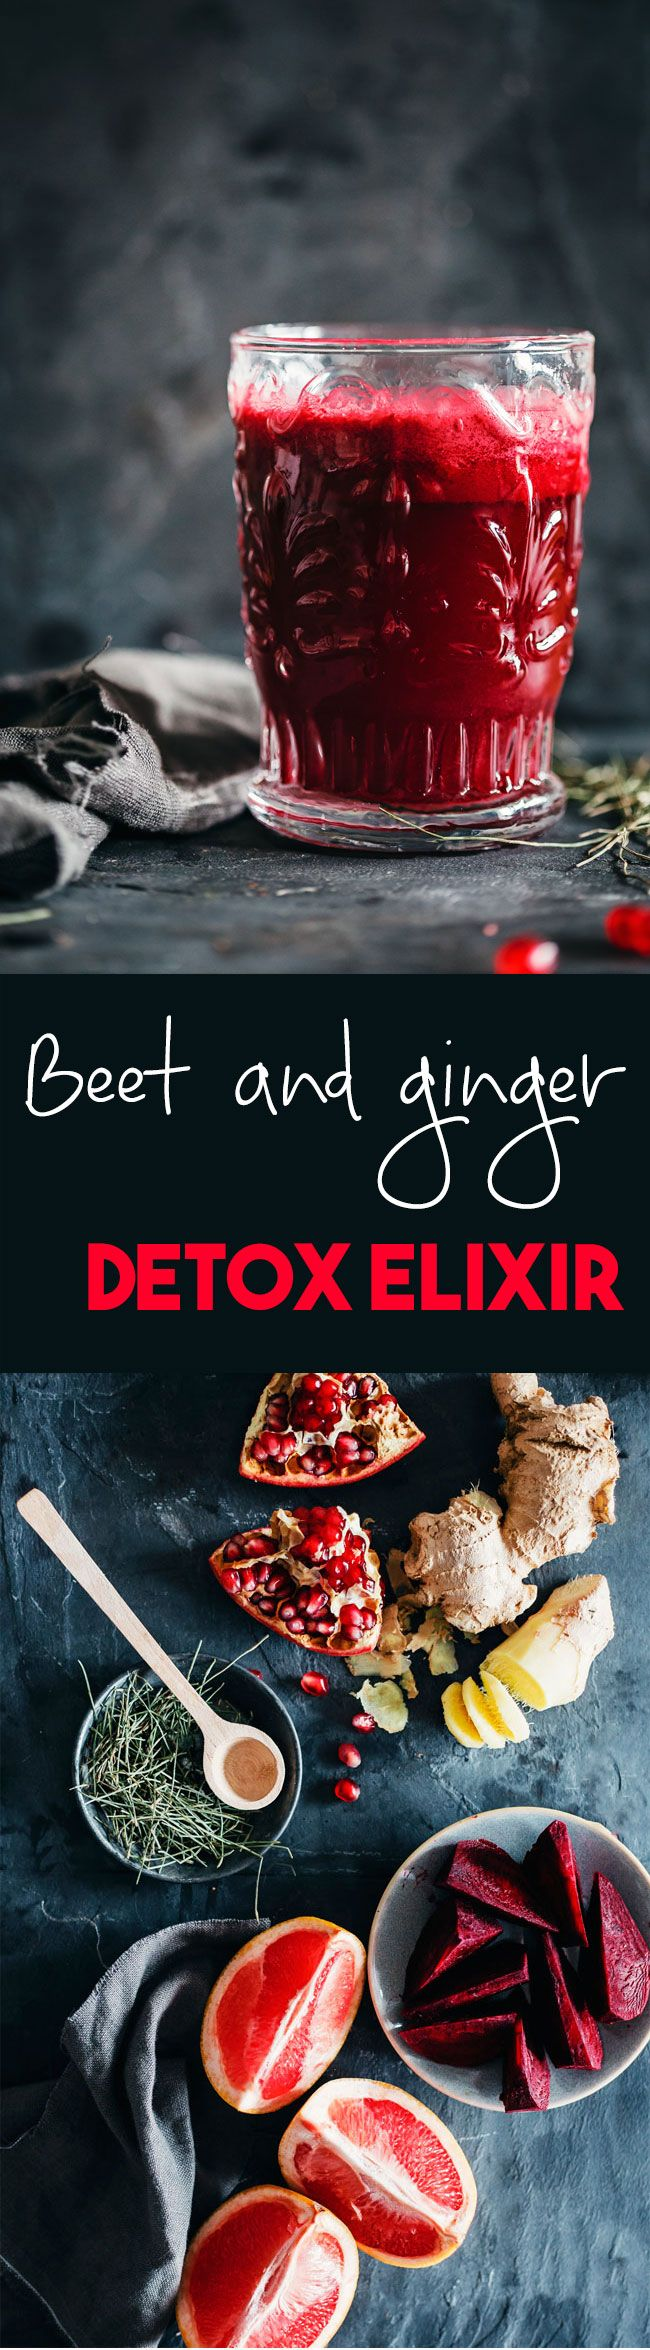 Beet, ginger and herbal tea, a purifying elixir #detox | TheAwesomeGreen.com